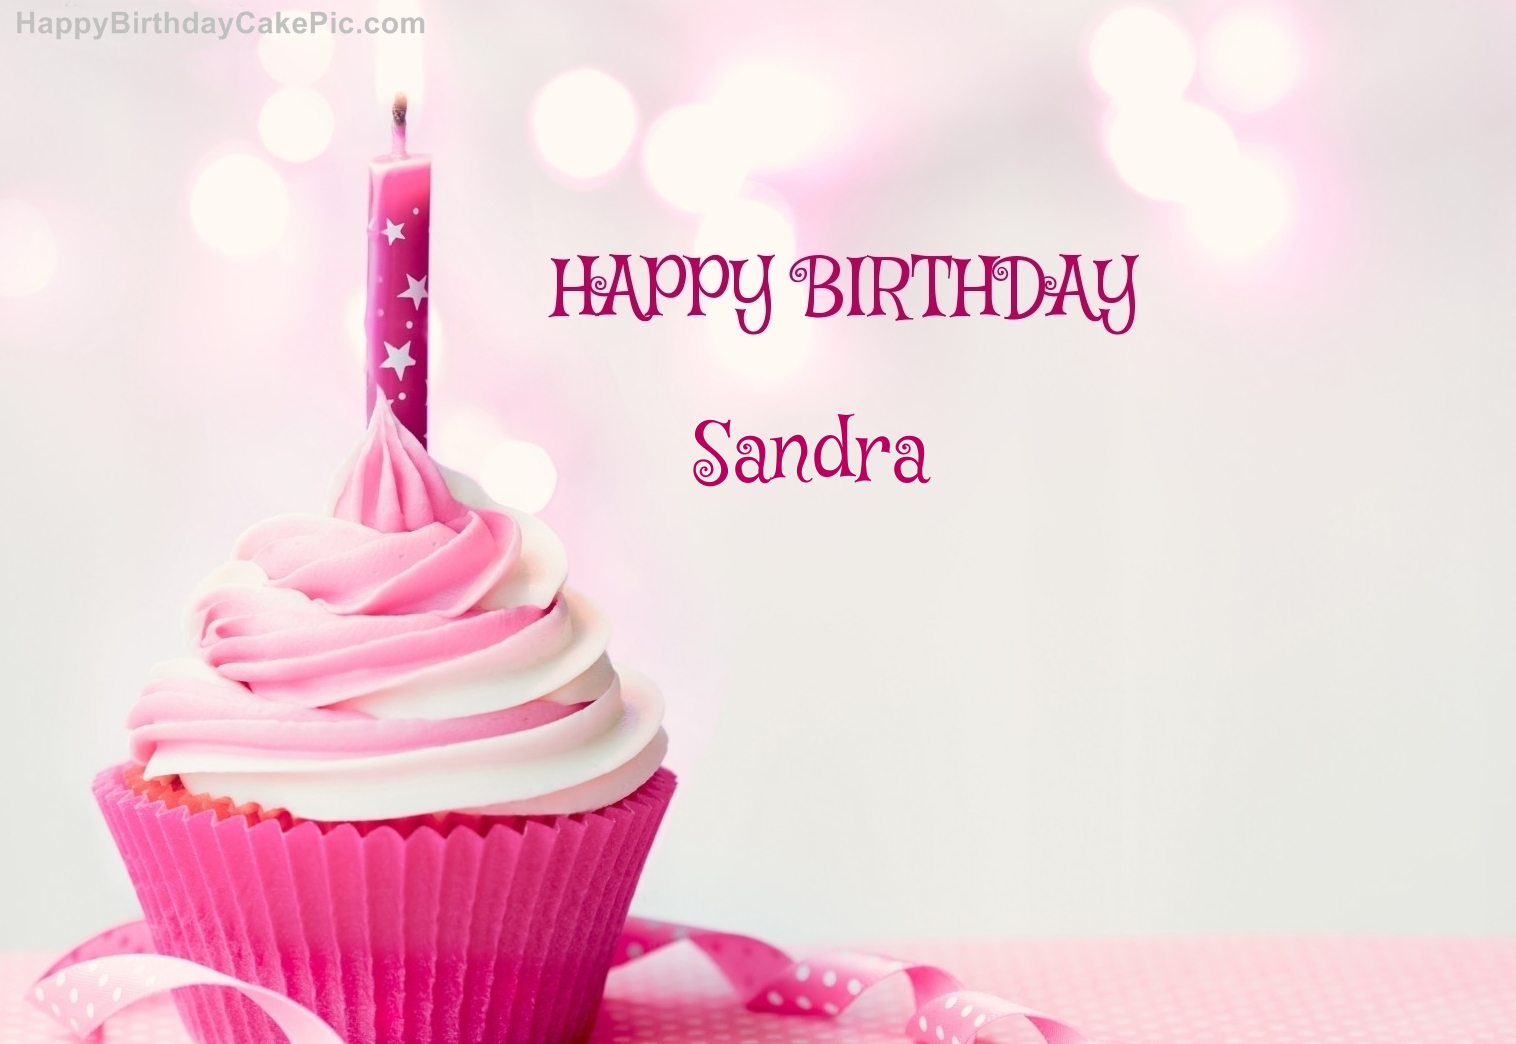 Happy Birthday Cupcake Candle Pink Cake For Sandra